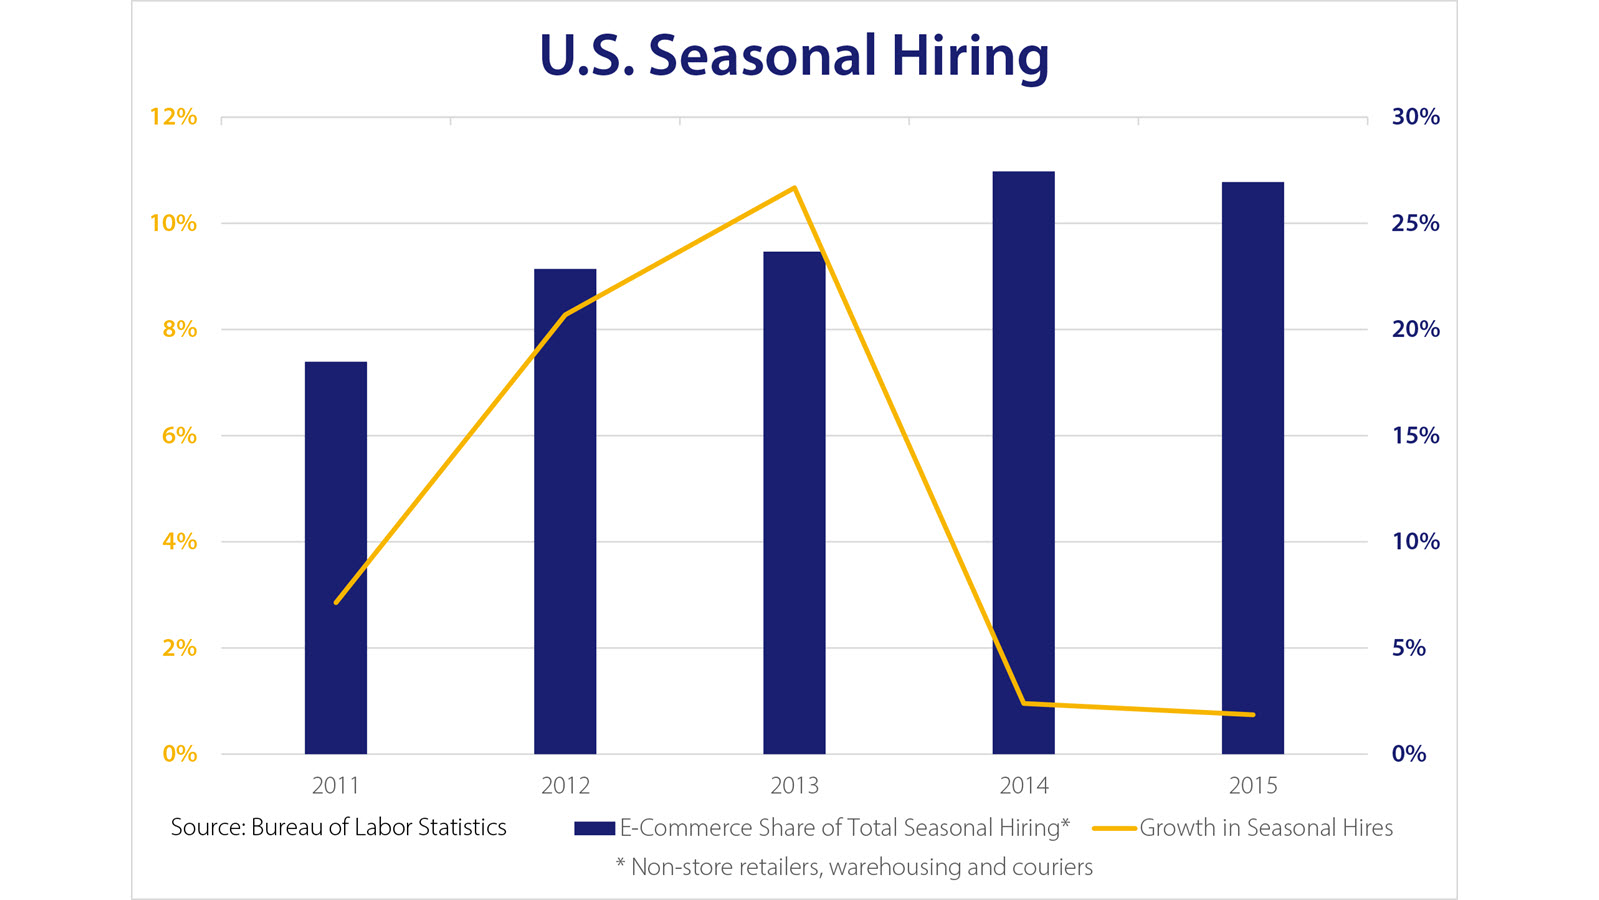 Chart of U.S. seasonal hiring from 2011 to 2015 showing e-commerce share of total seasonal hiring vs. growth in seasonal hires.